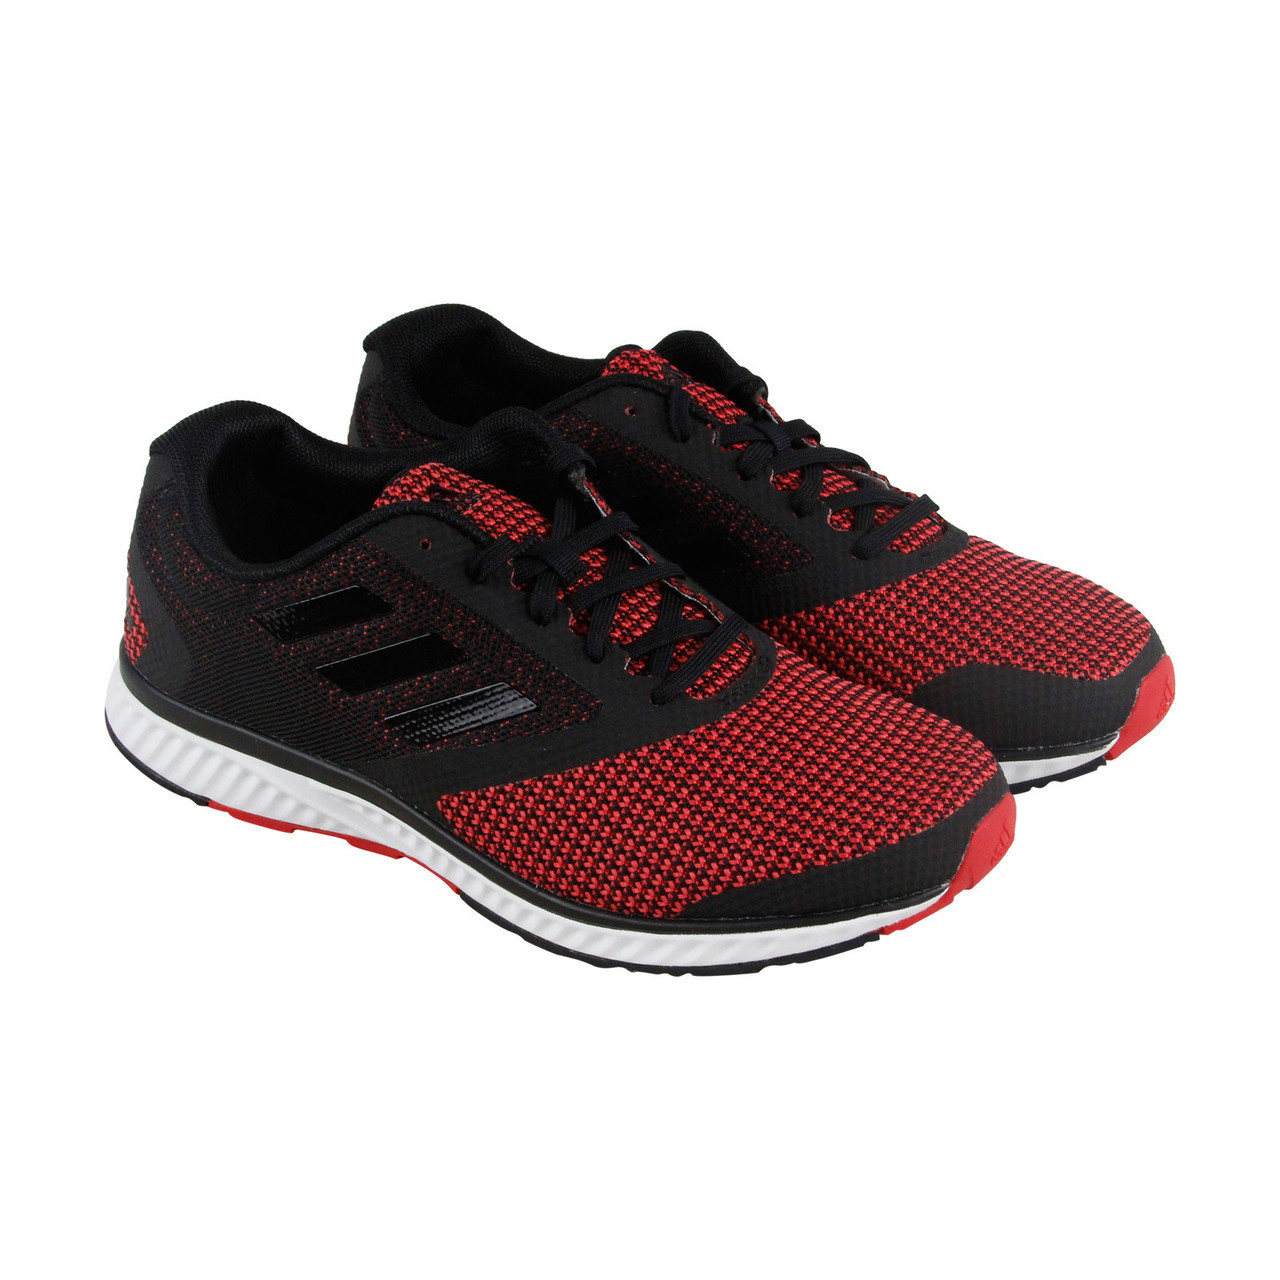 a5e46134853b Adidas Edge RC Men s Running Shoes CG4281 - Black   Red